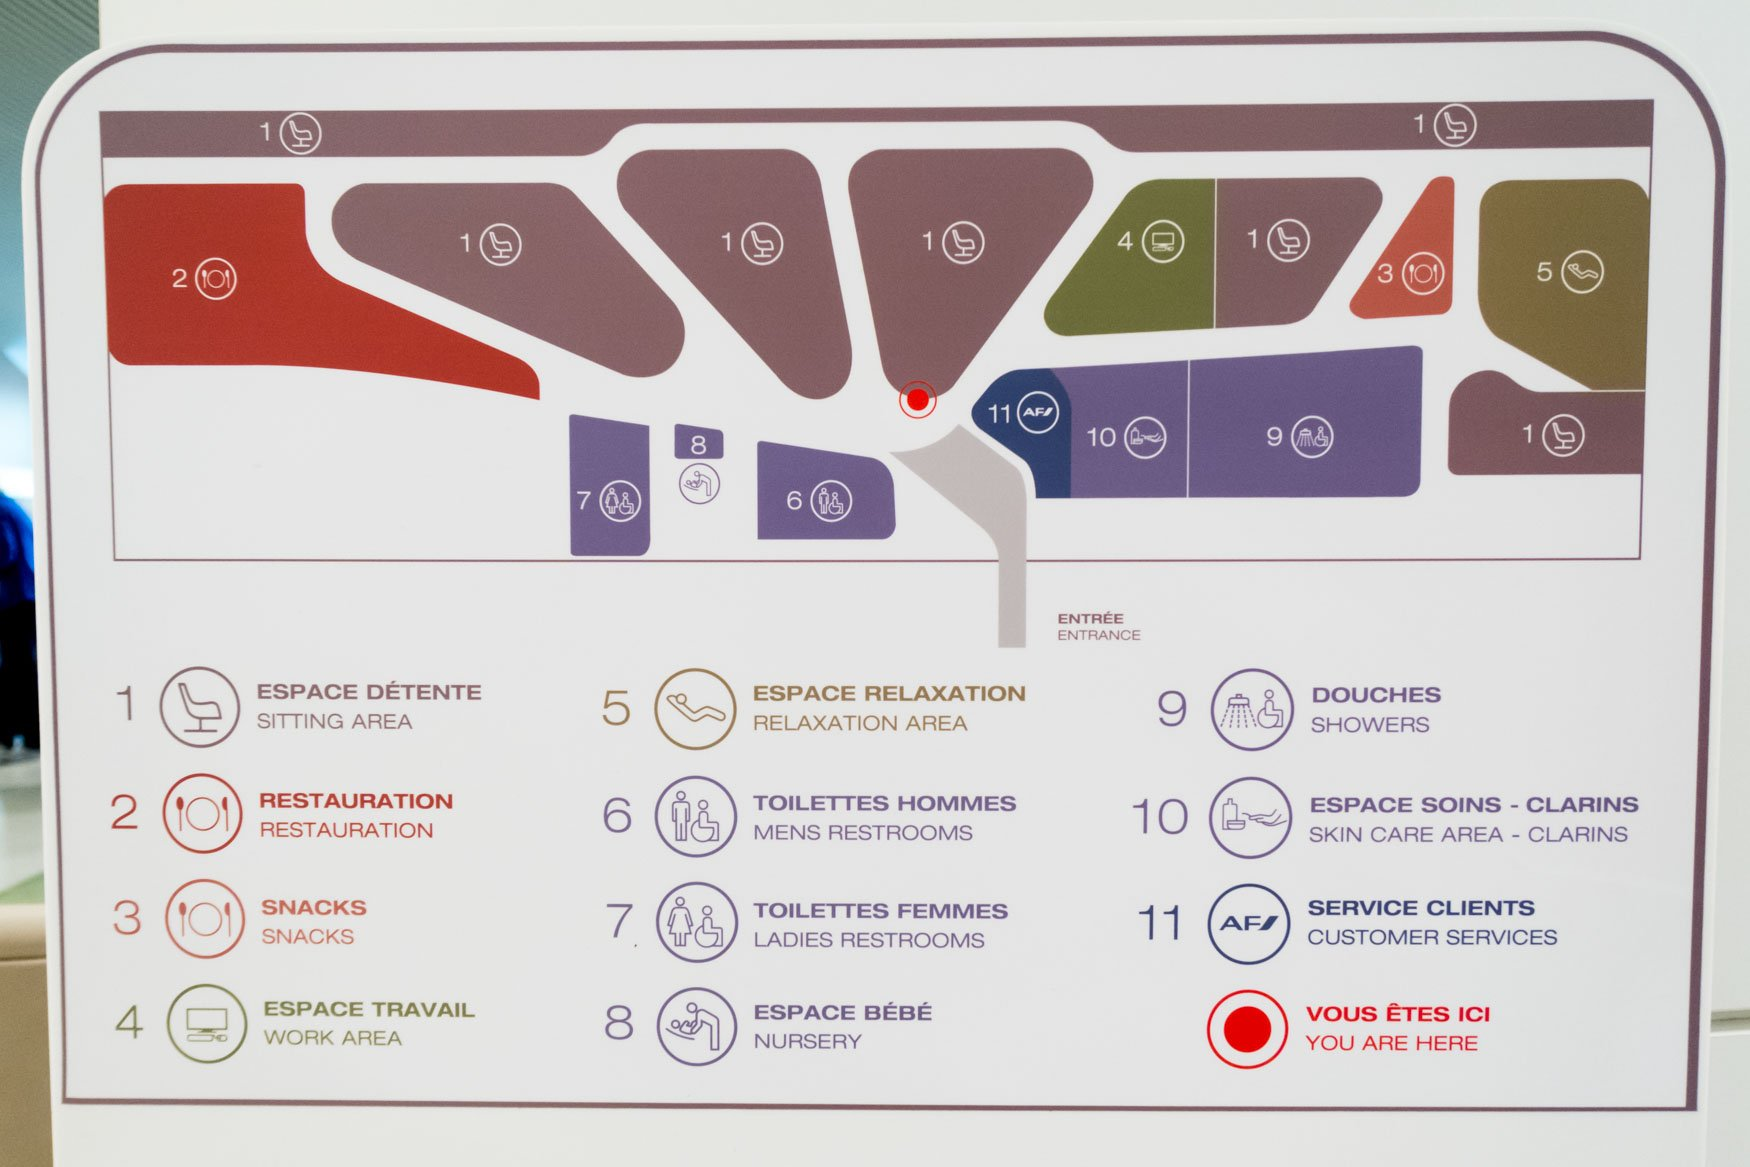 Air France Salon Lounge Terminal 2E Concourse M Map